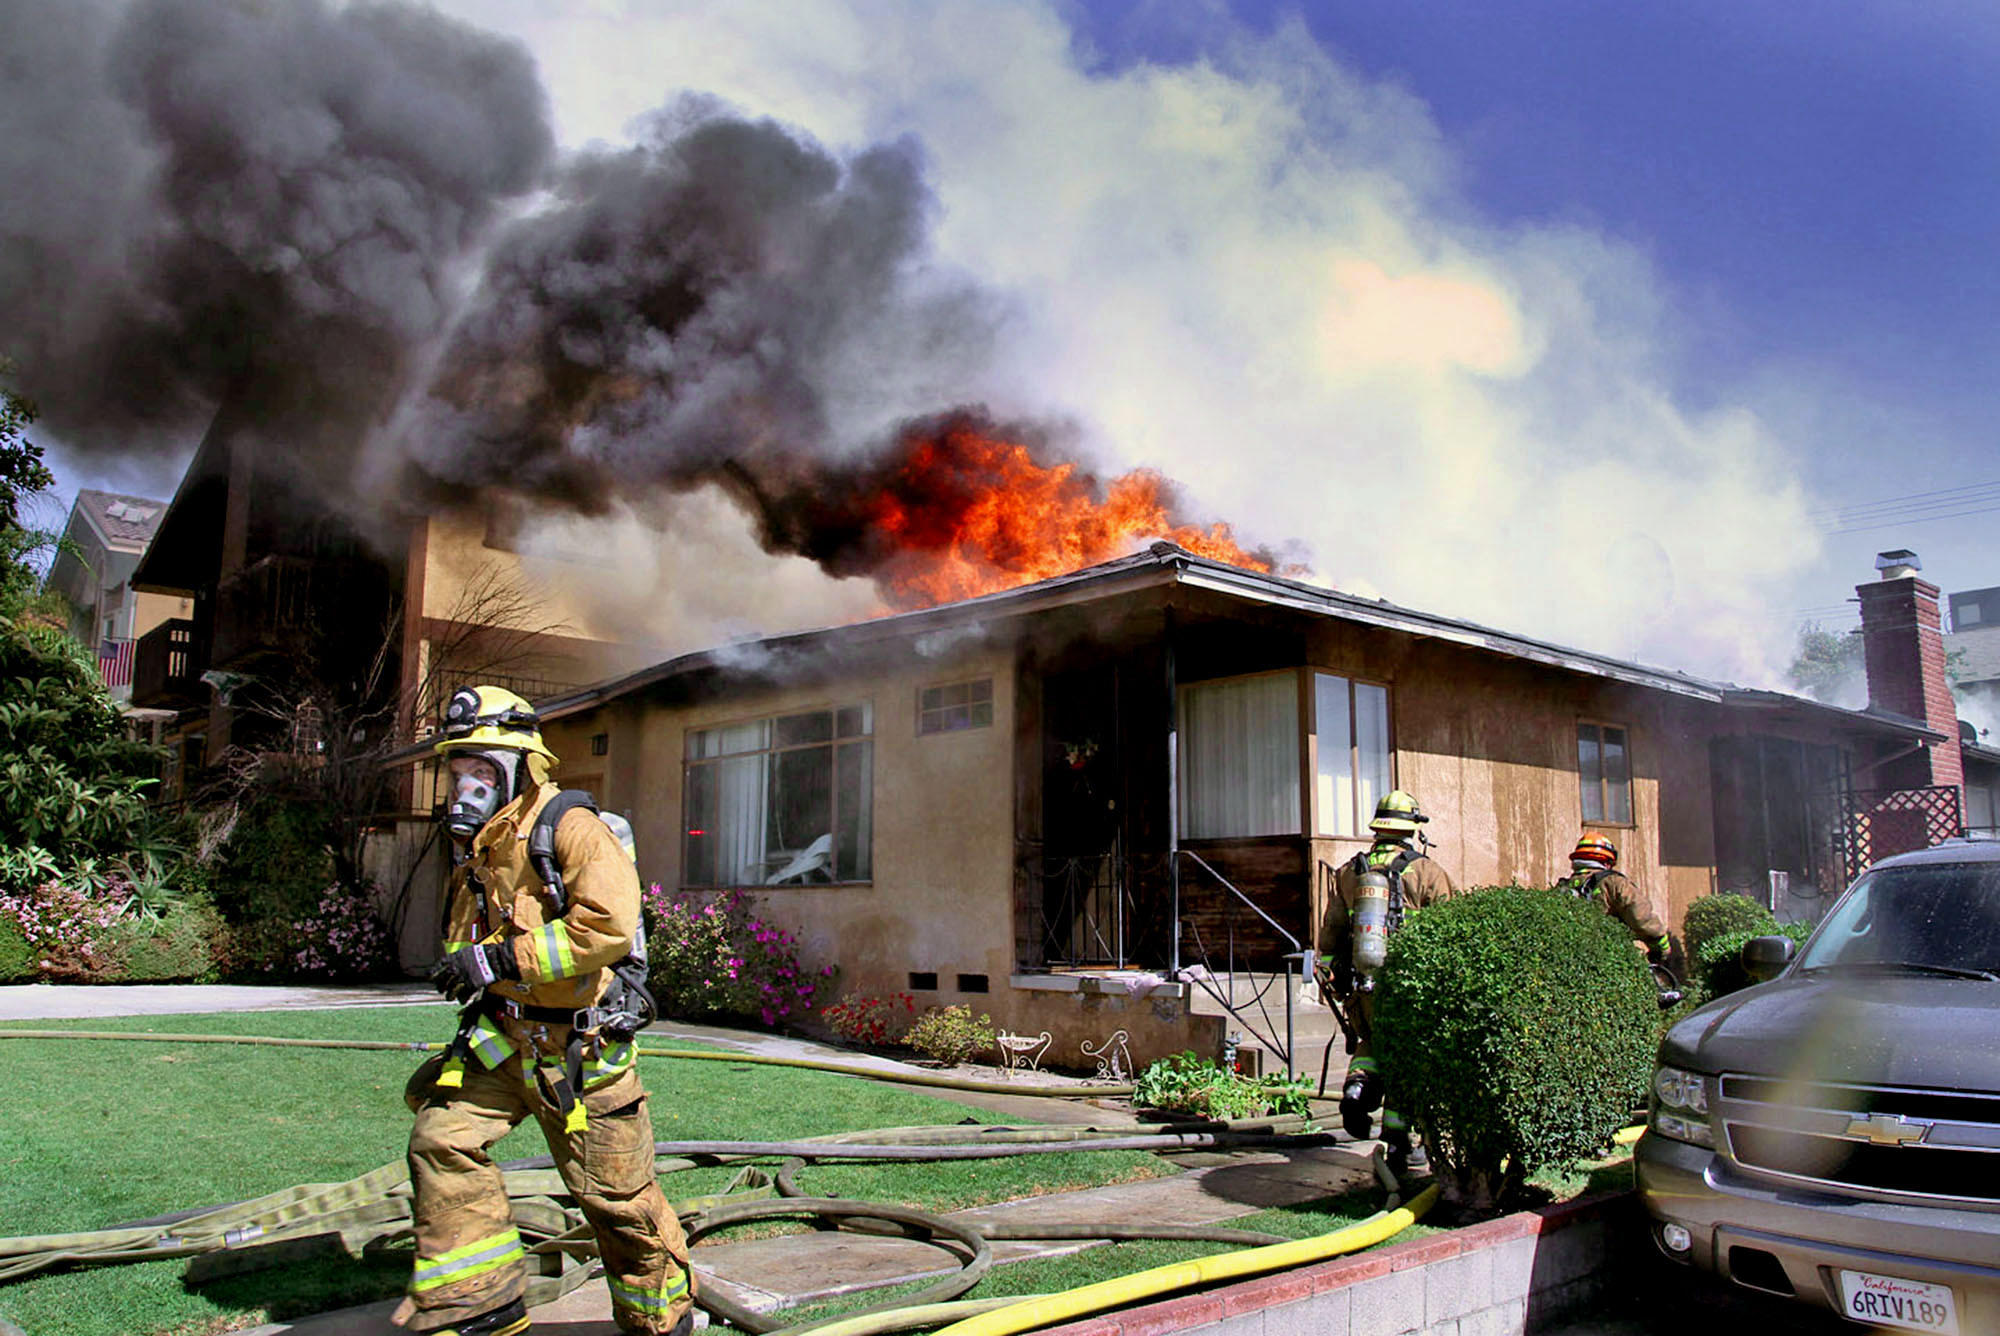 Burbank fire fighters battled a second-alarm blaze in the 700 Block of East Palm Avenue on Wednesday, March 12, 2014. It took firefighters nearly two hours to control and knock down the flames.